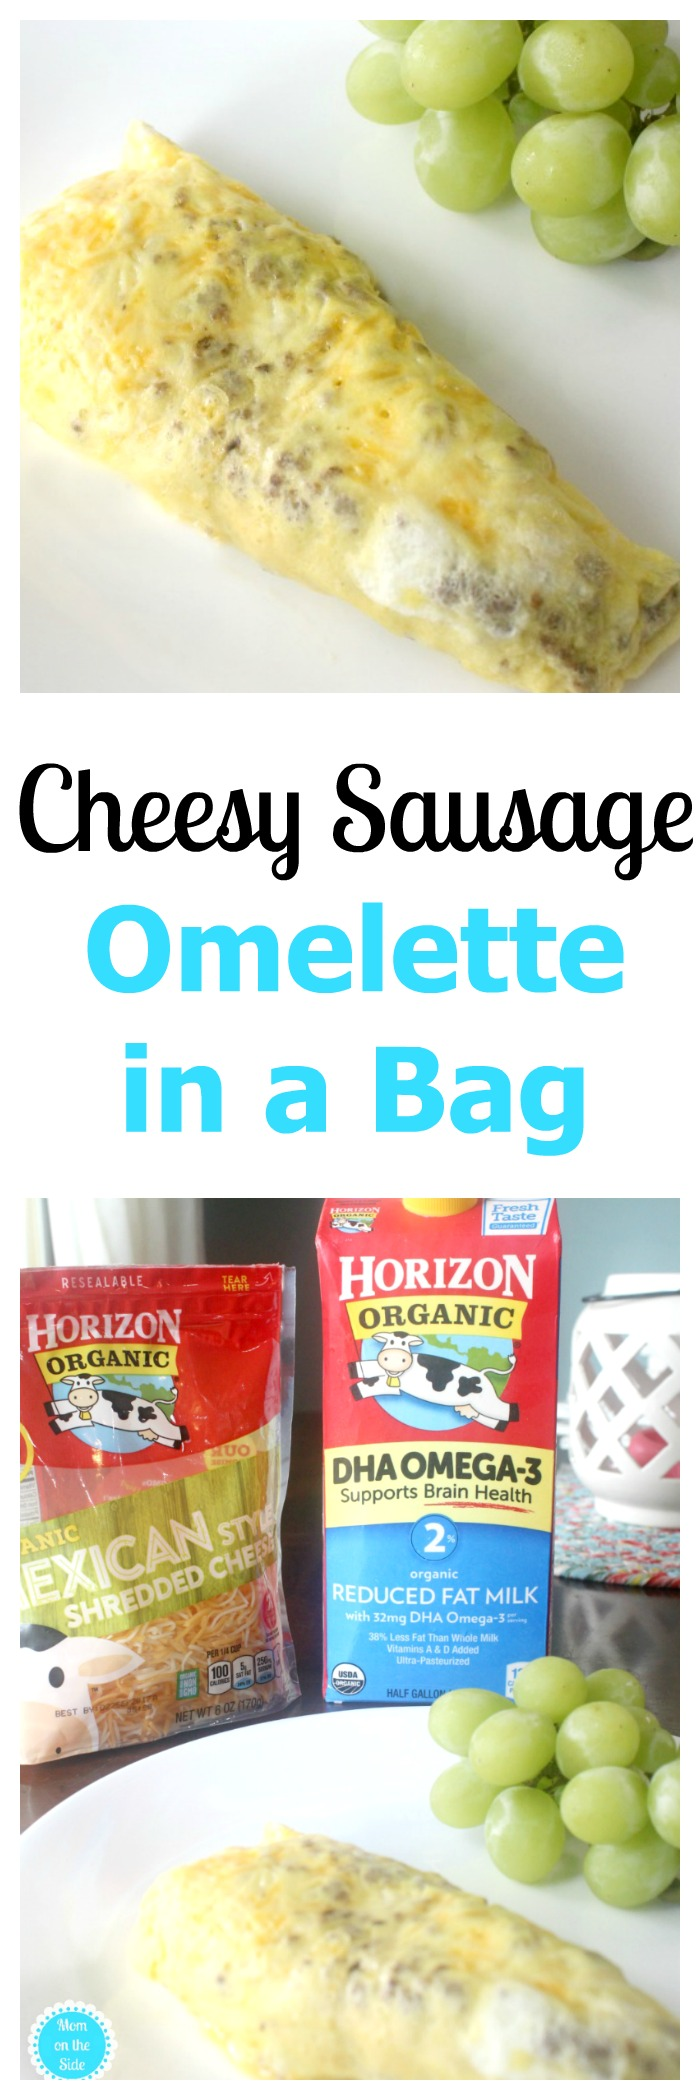 Cheesy Sausage Omelette in a Bag Recipes